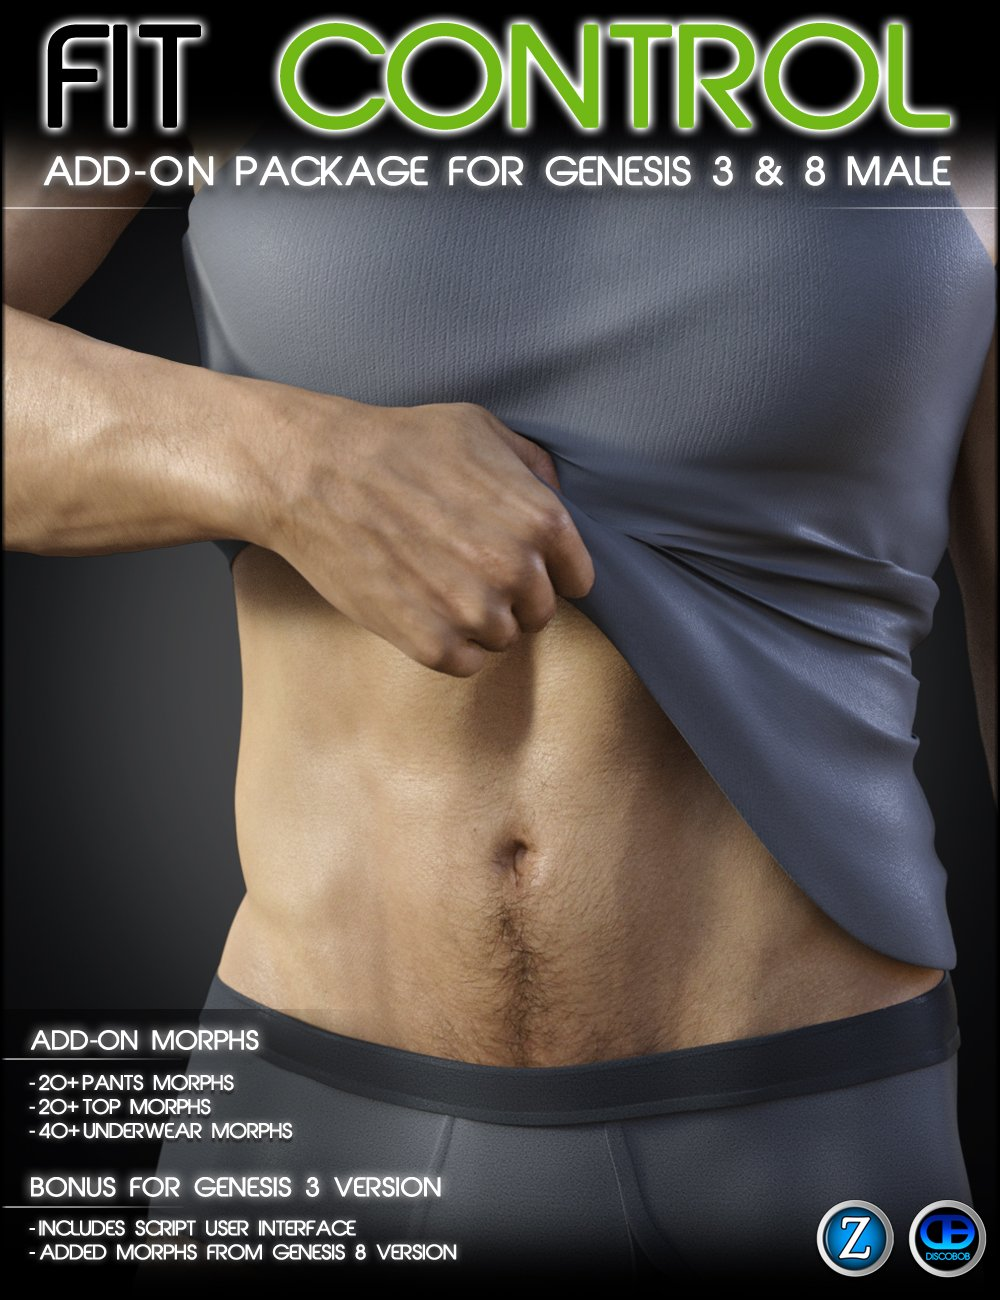 Fit Control Add-On for Genesis 3 & 8 Male by: Zev0Discobob, 3D Models by Daz 3D